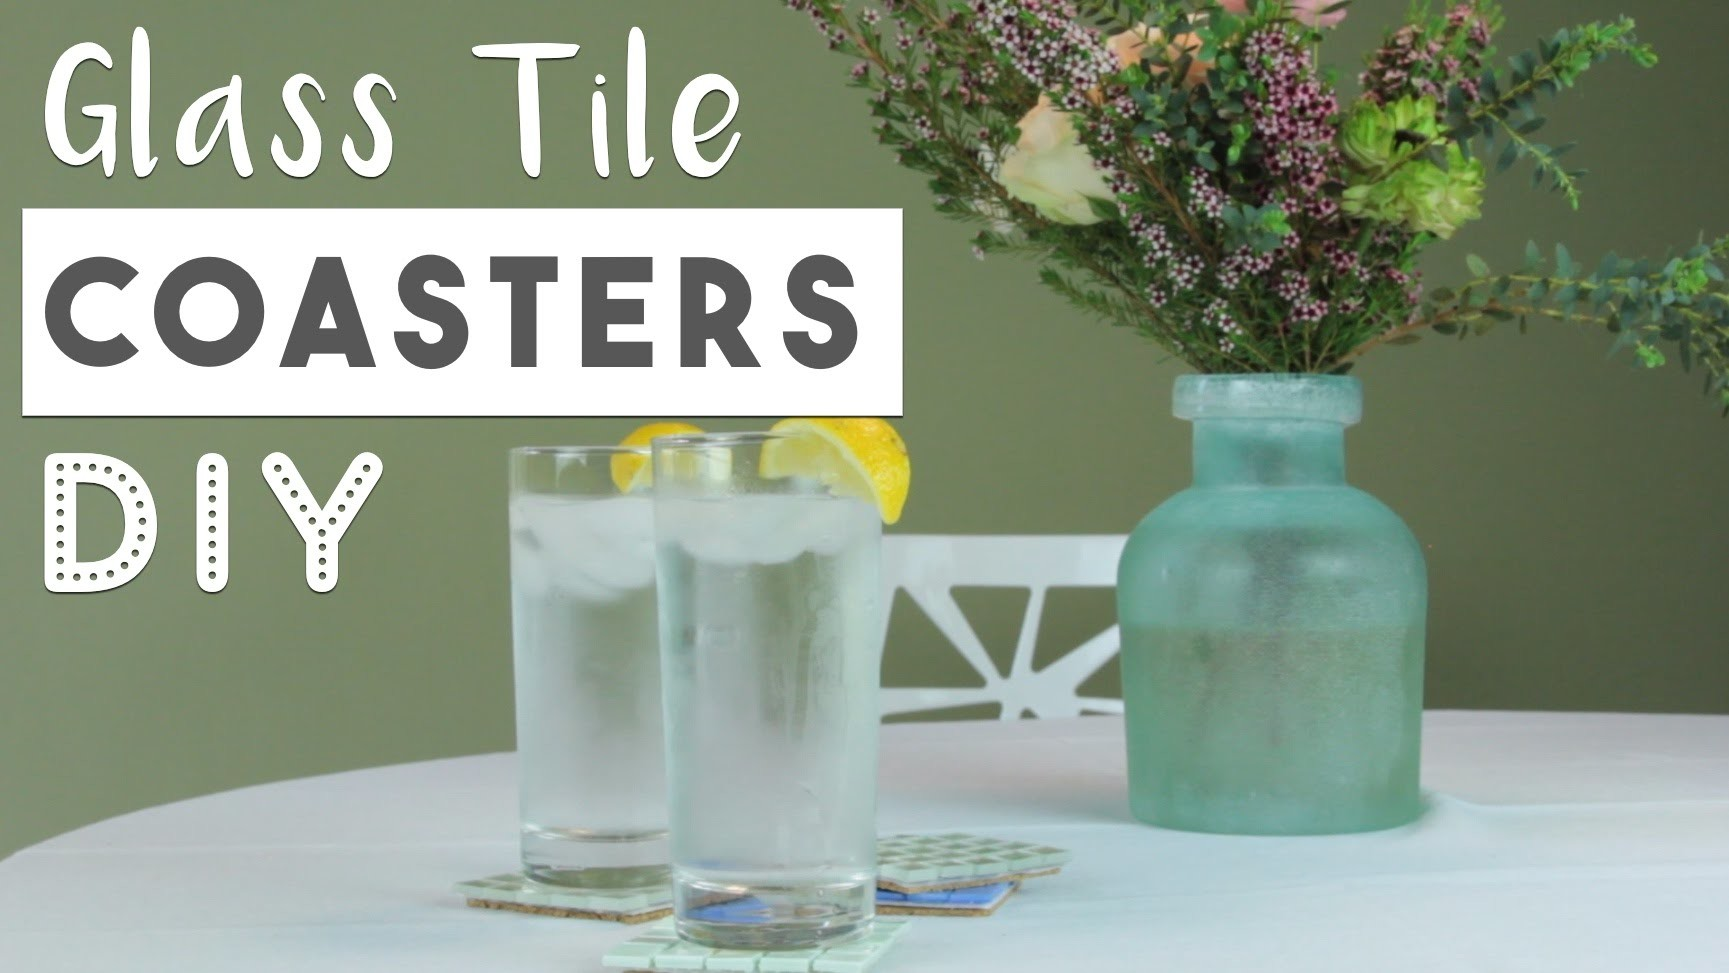 DIY Glass Tile Coasters   Easy Mother's Day Gift Idea